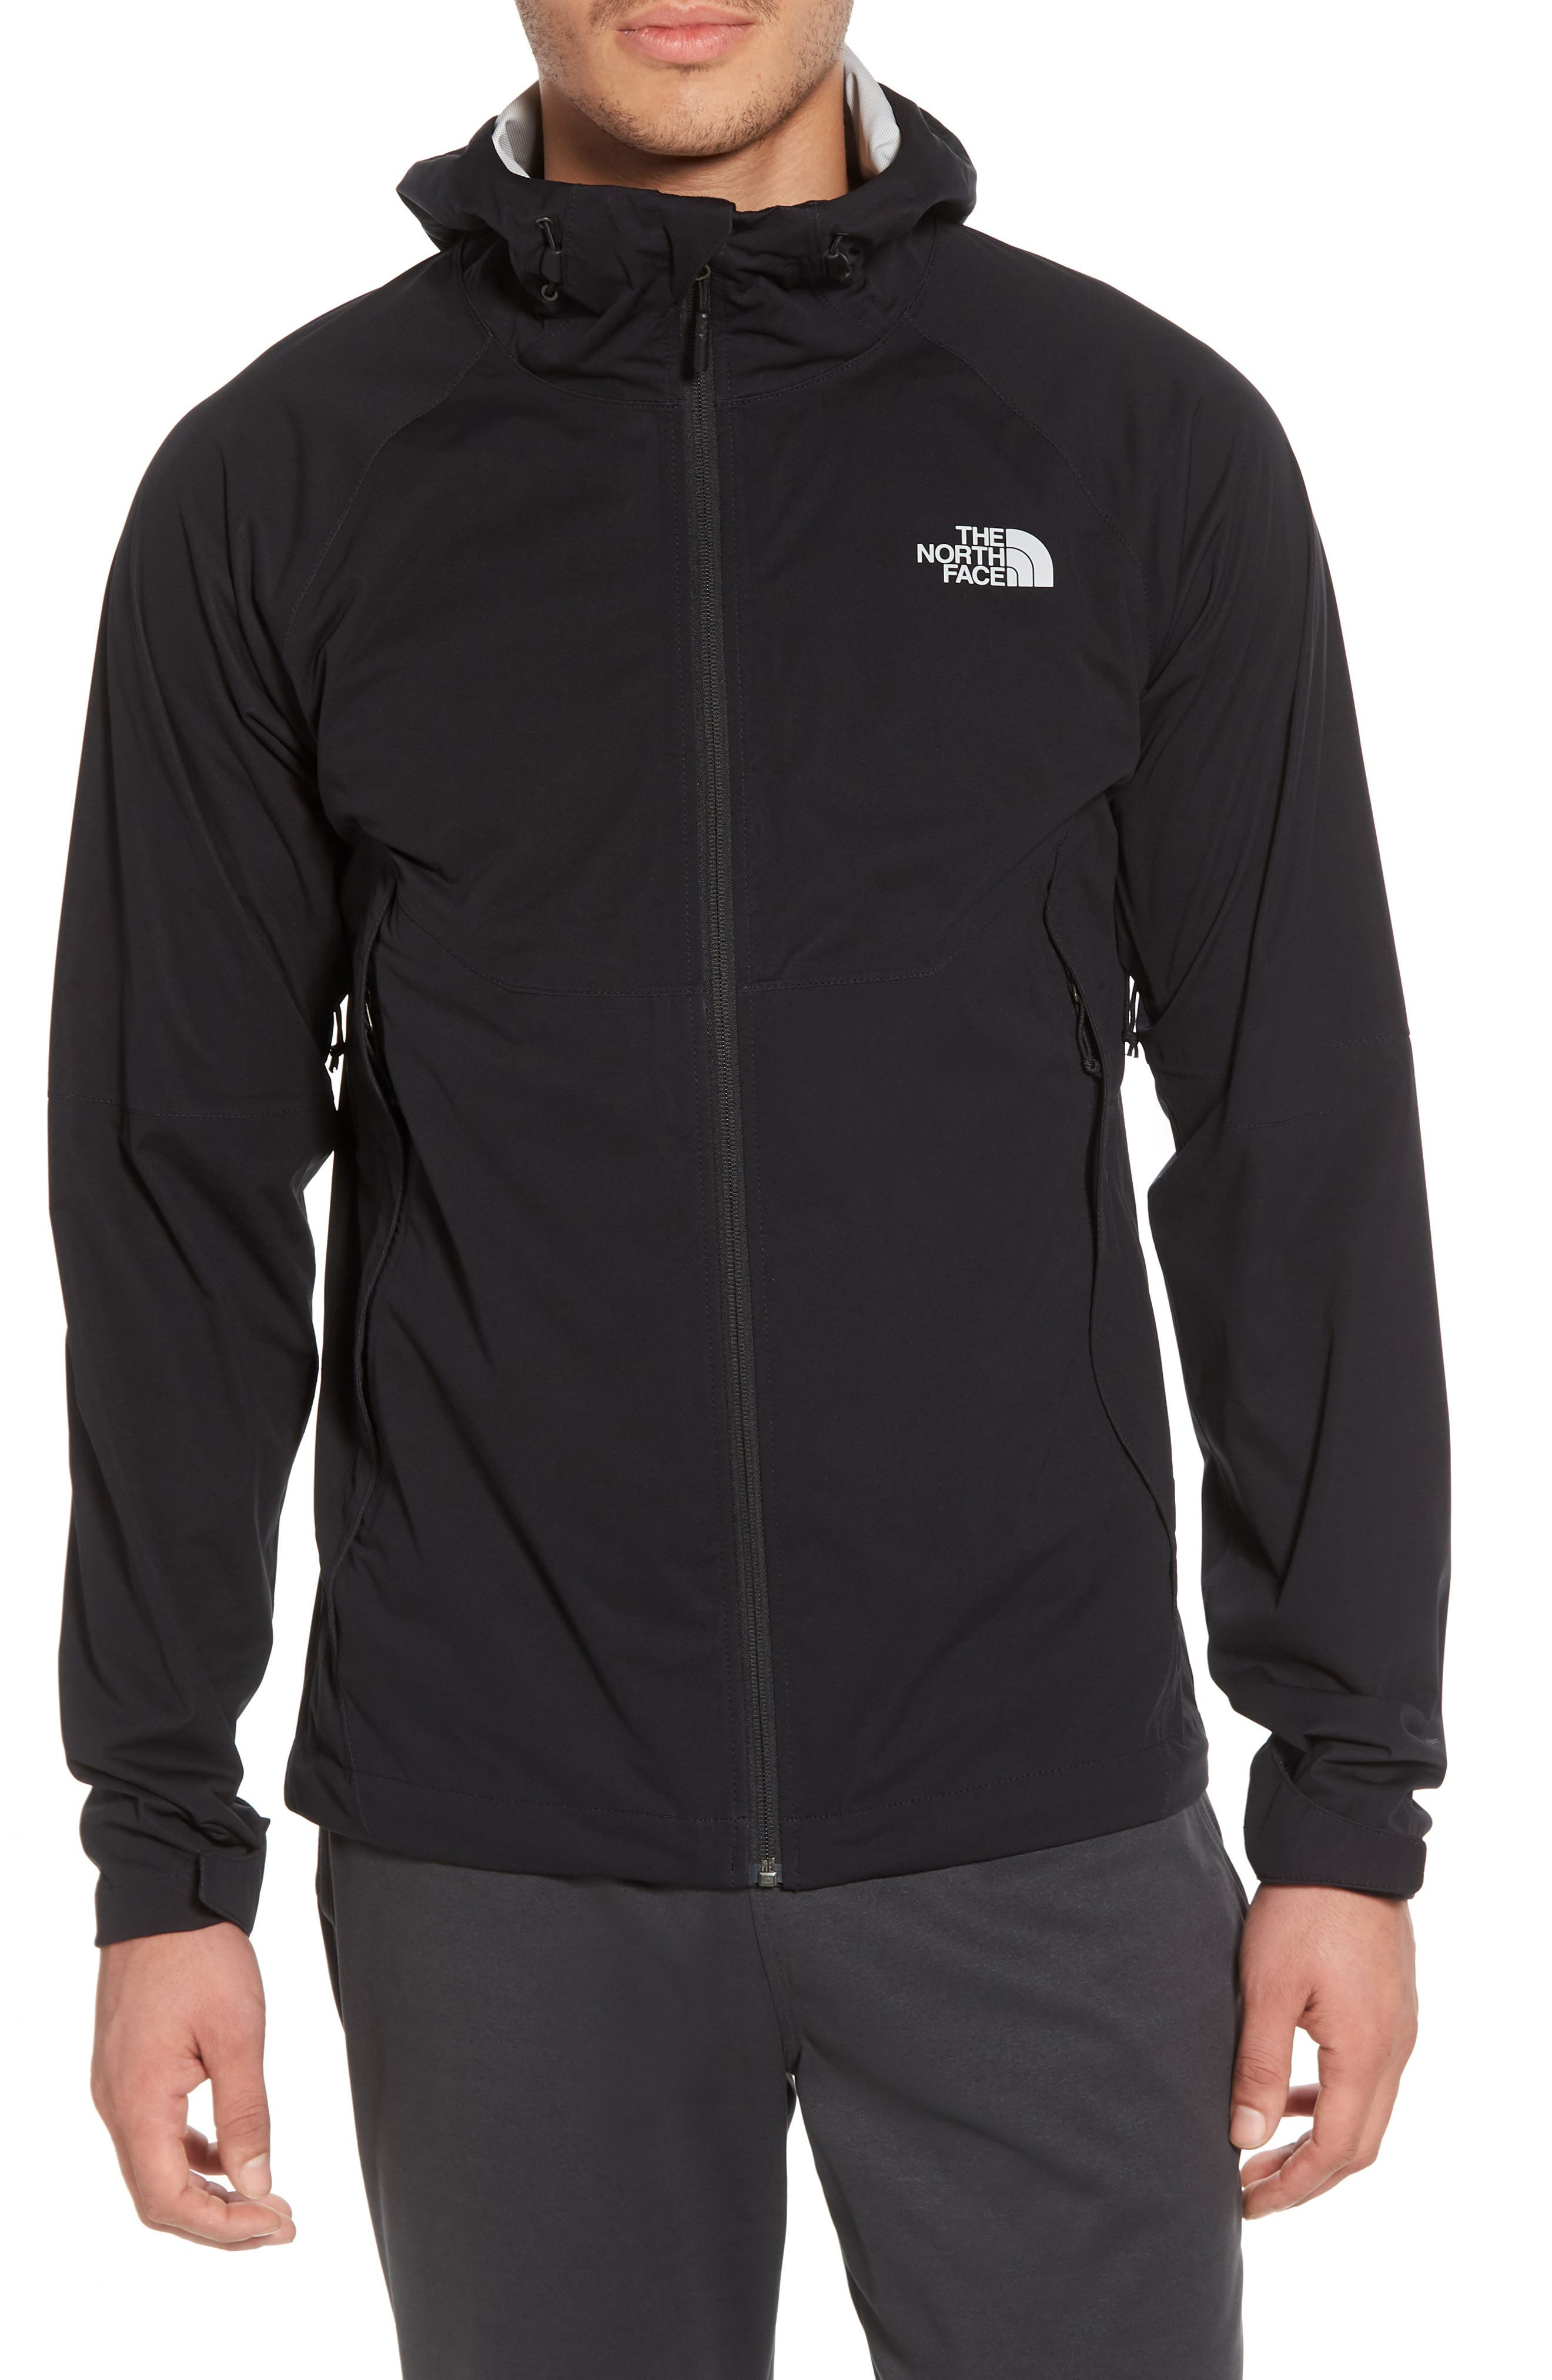 Allproof Stretch Hooded Rain Jacket,                             Alternate thumbnail 4, color,                             Tnf Black